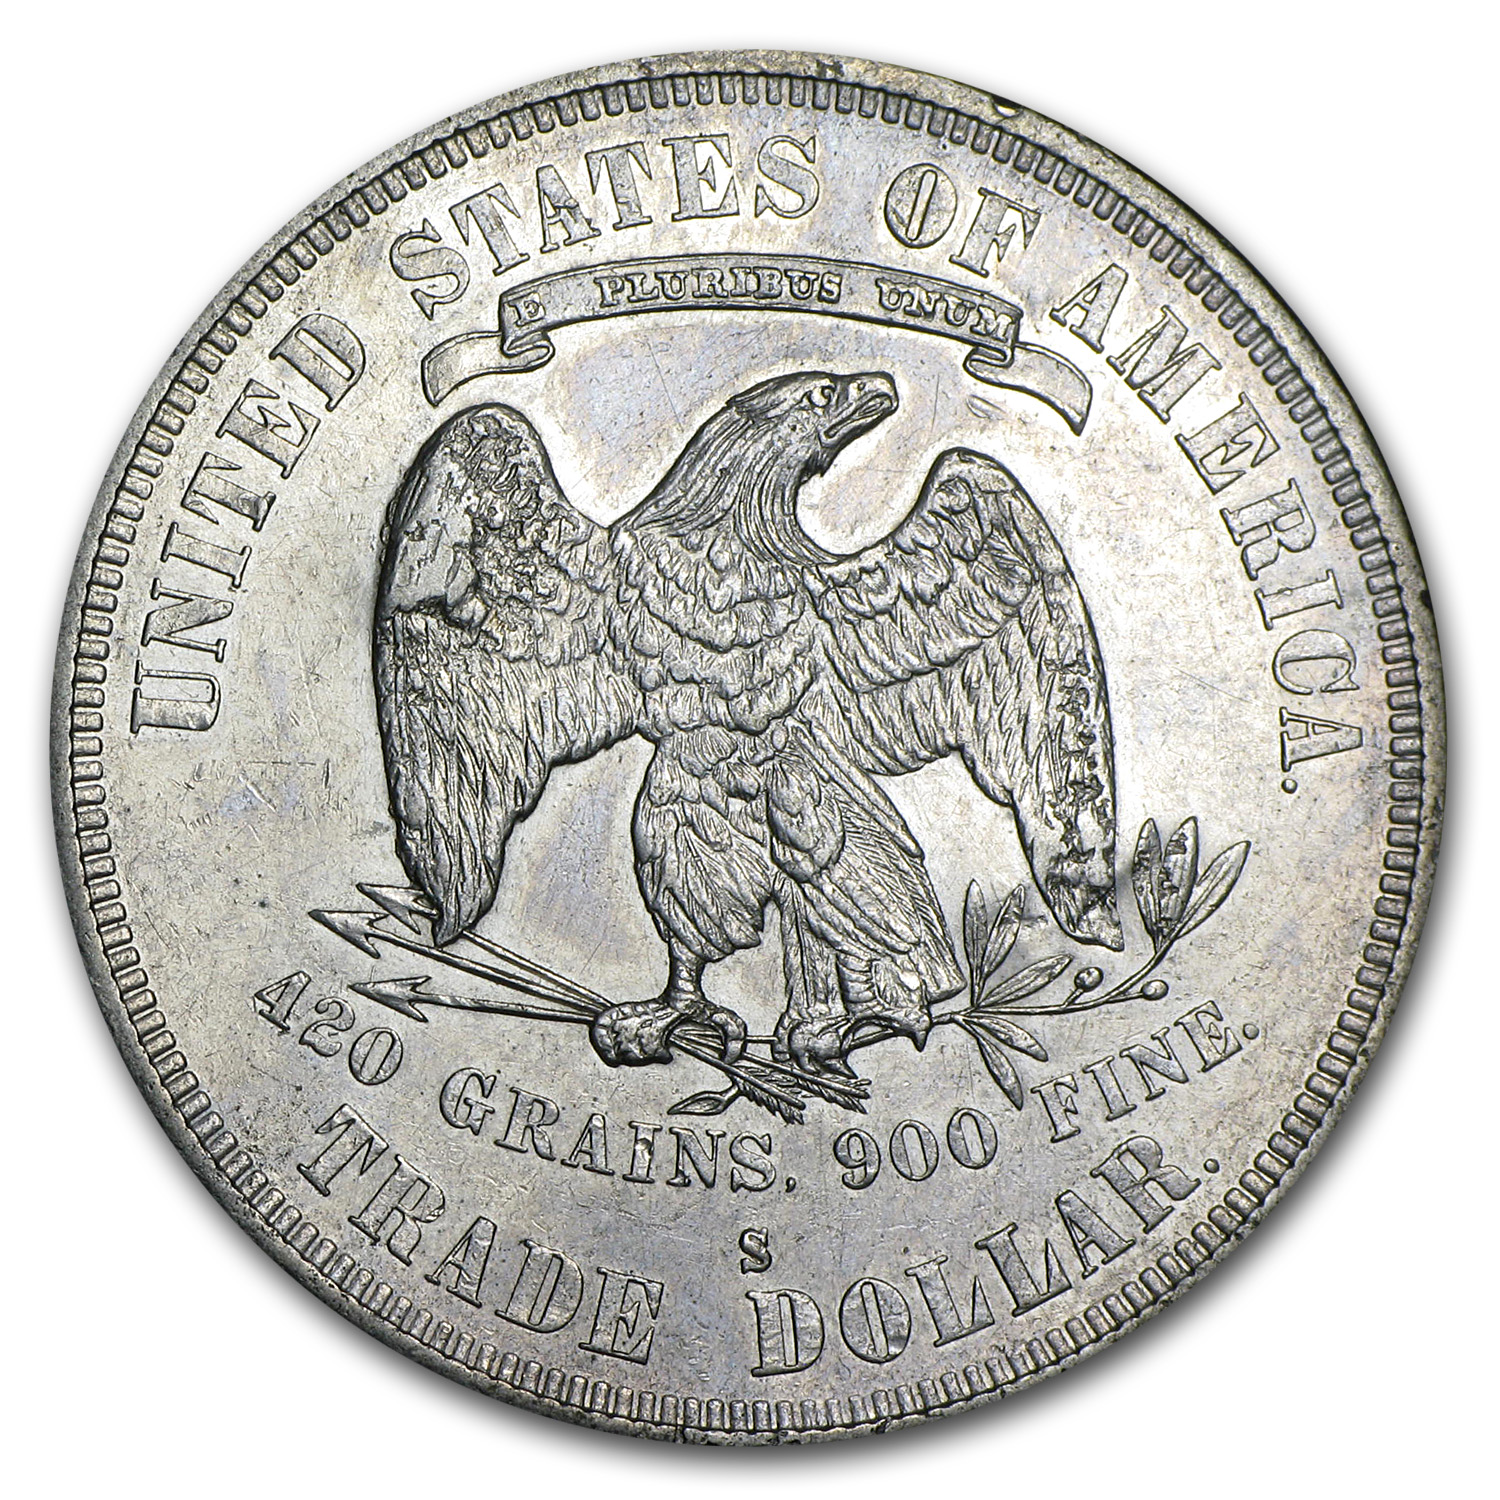 1878-S Trade Dollar - Almost Uncirculated - Chopmarks